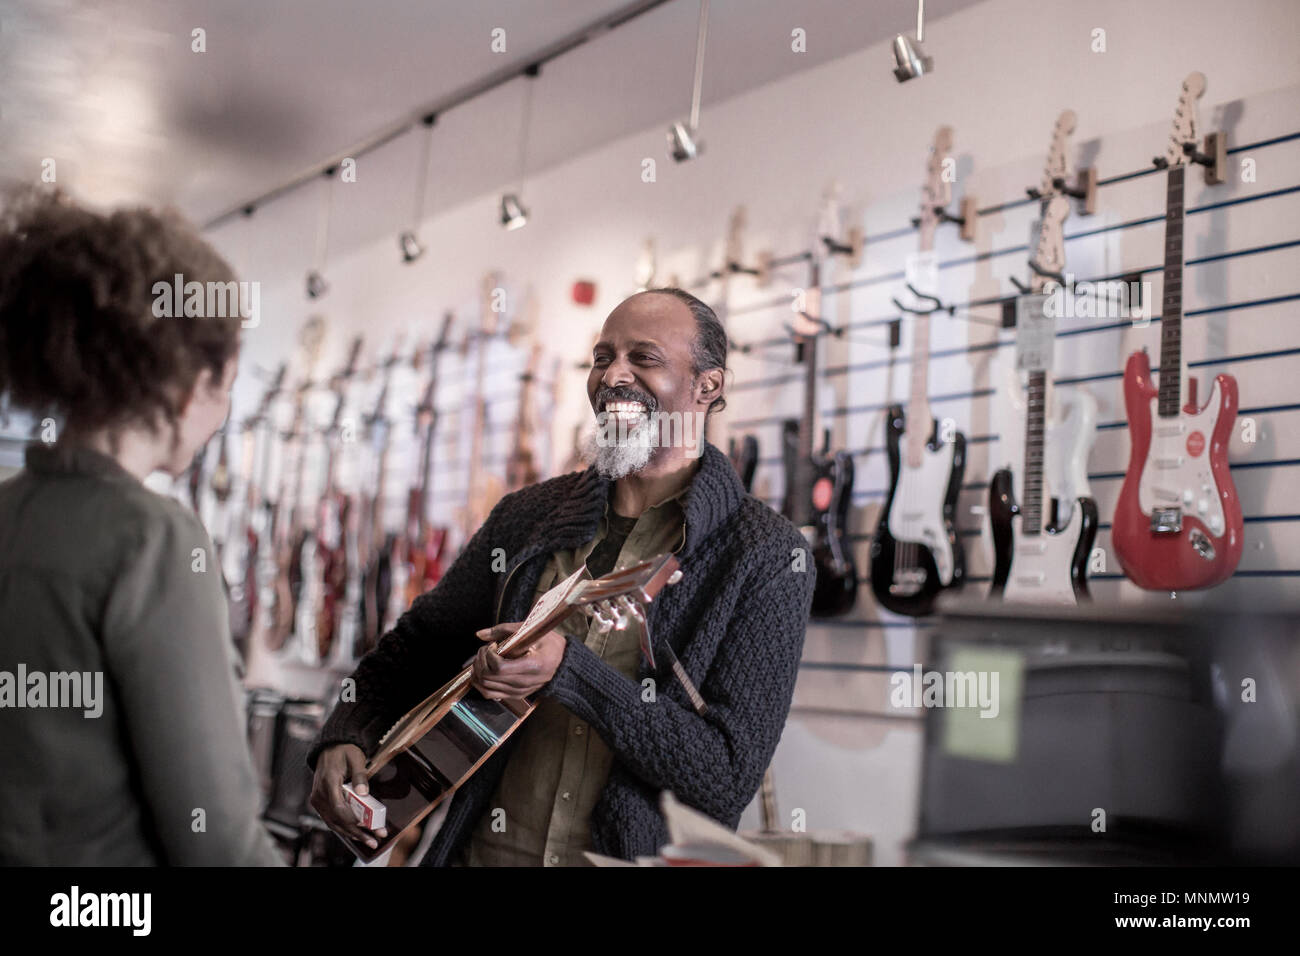 Senior male playing guitar in store Stock Photo